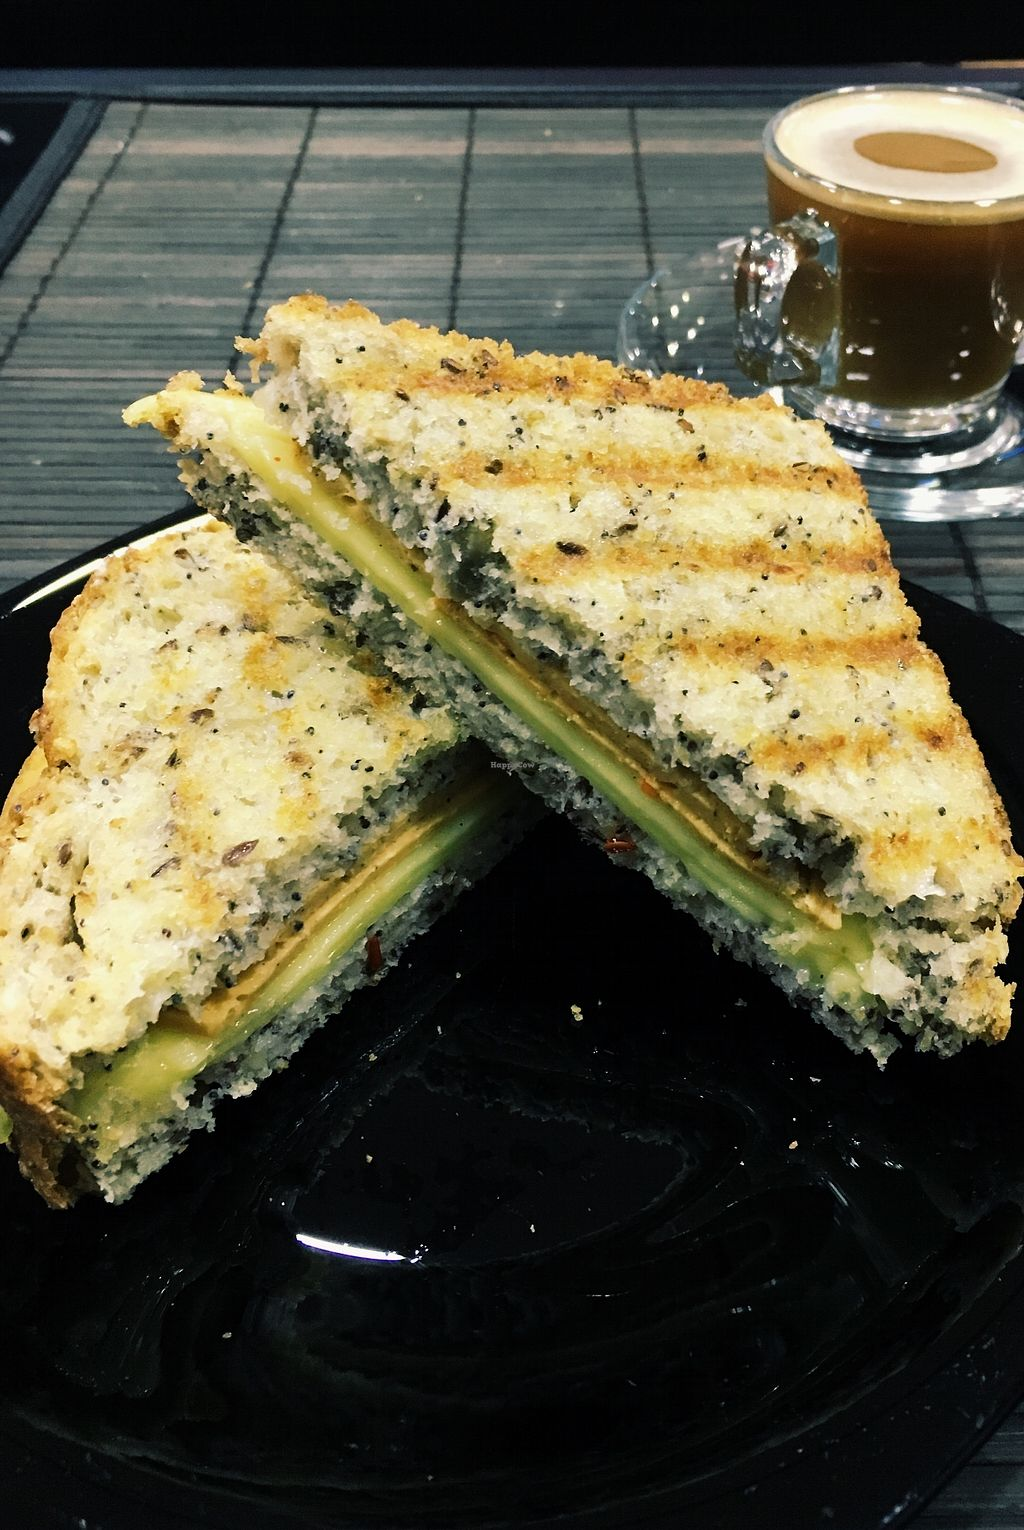 "Photo of Vegana By Tentugal  by <a href=""/members/profile/NathaliaMilis"">NathaliaMilis</a> <br/>Vegan toast ham and cheese <br/> December 8, 2017  - <a href='/contact/abuse/image/90656/333552'>Report</a>"